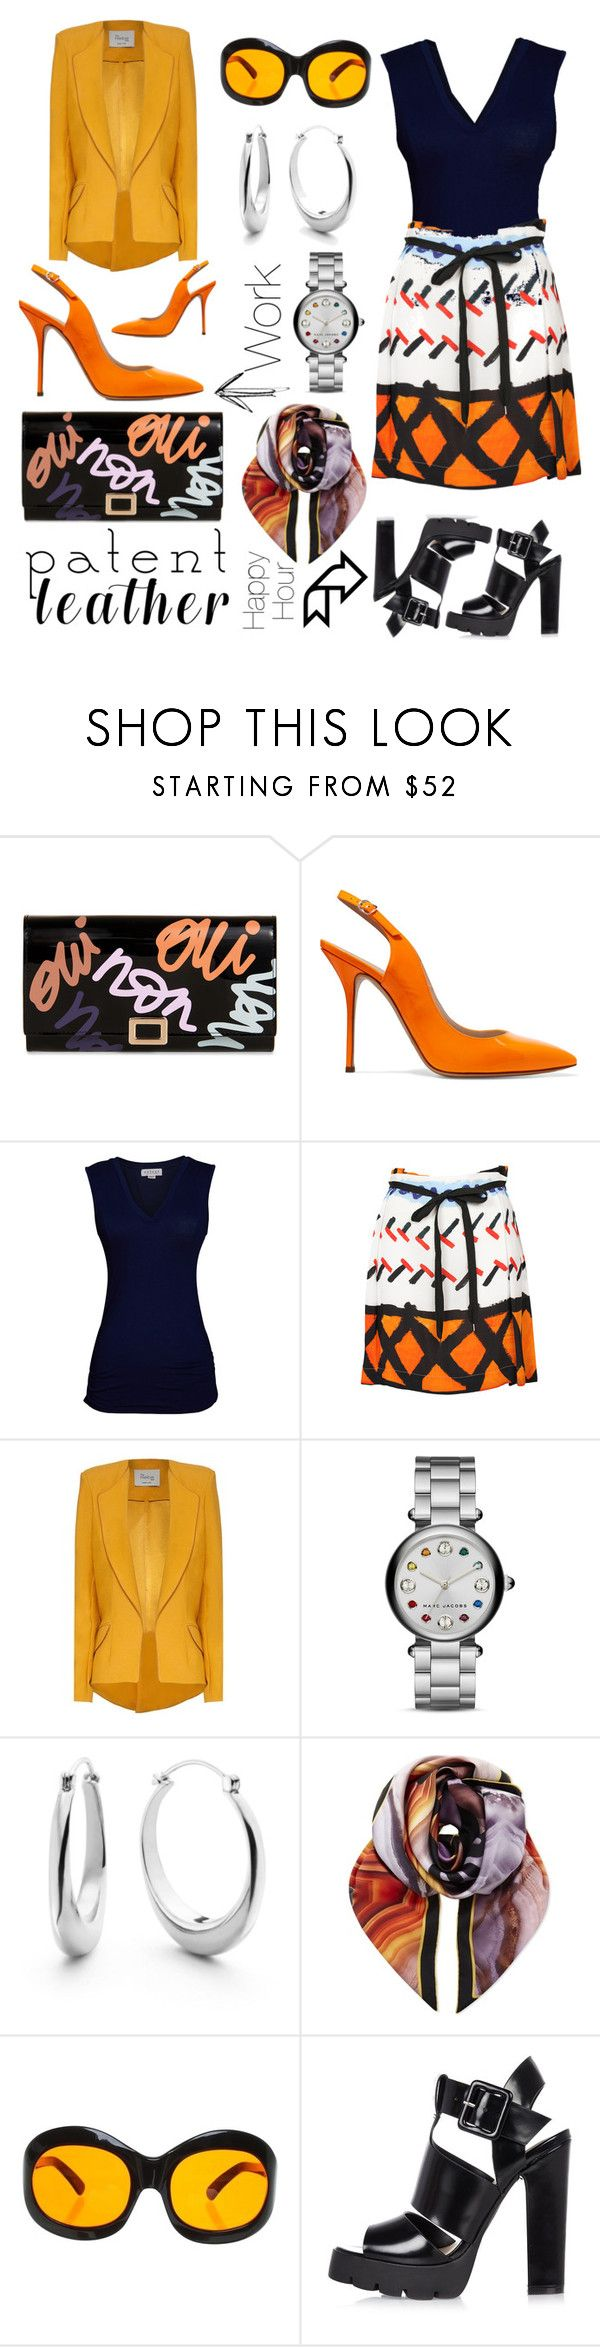 """""""City Slickers: Patent Leather"""" by michele-nyc ❤ liked on Polyvore featuring Roger Vivier, Casadei, Velvet by Graham & Spencer, Vivienne Westwood Anglomania, Hebe Studio, Marc Jacobs, Shinola, Givenchy, Cutler and Gross and River Island"""